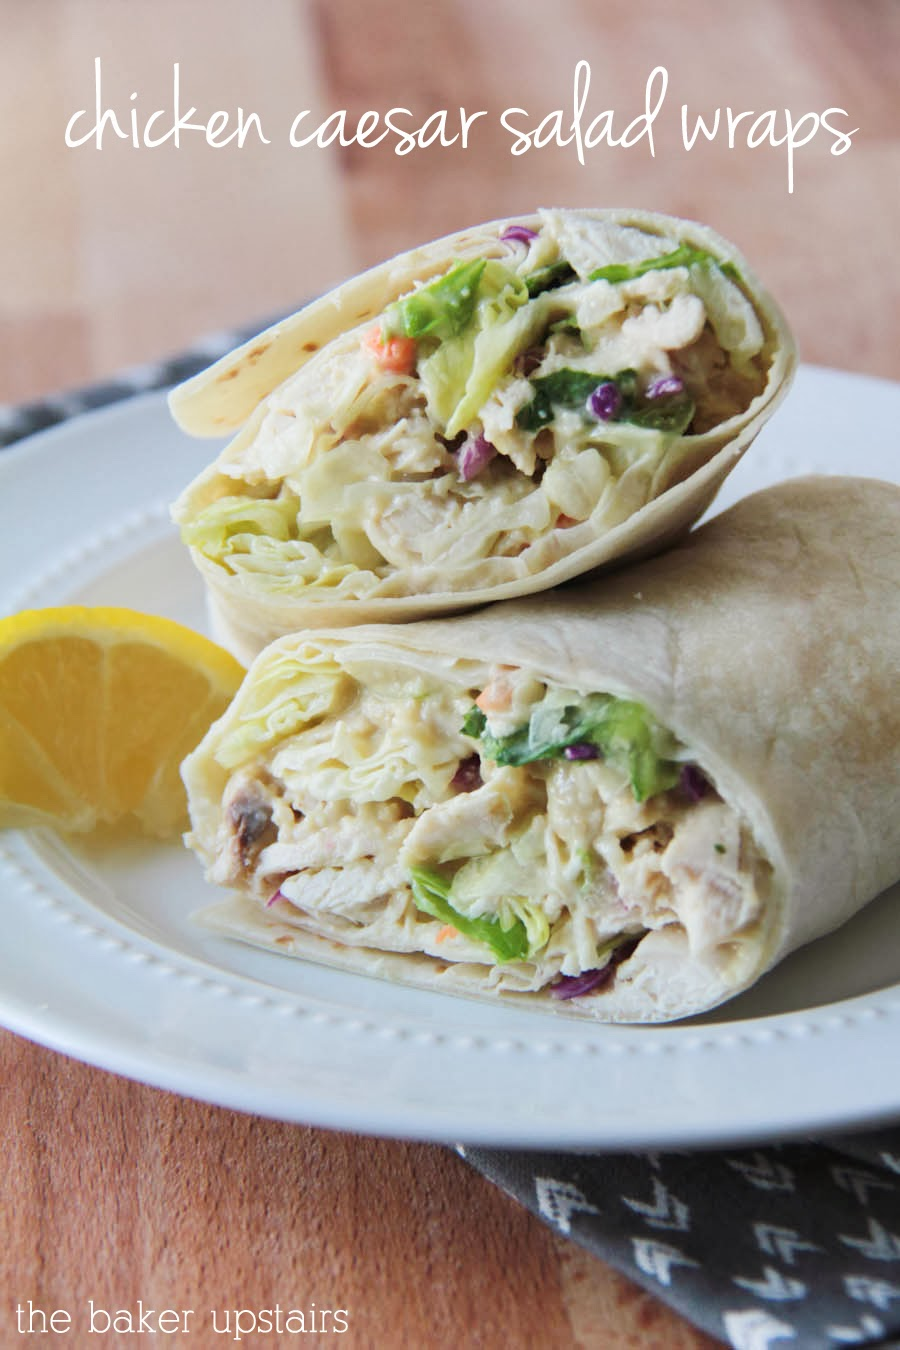 These chicken caesar salad wraps are so quick and easy to put together, and so delicious!